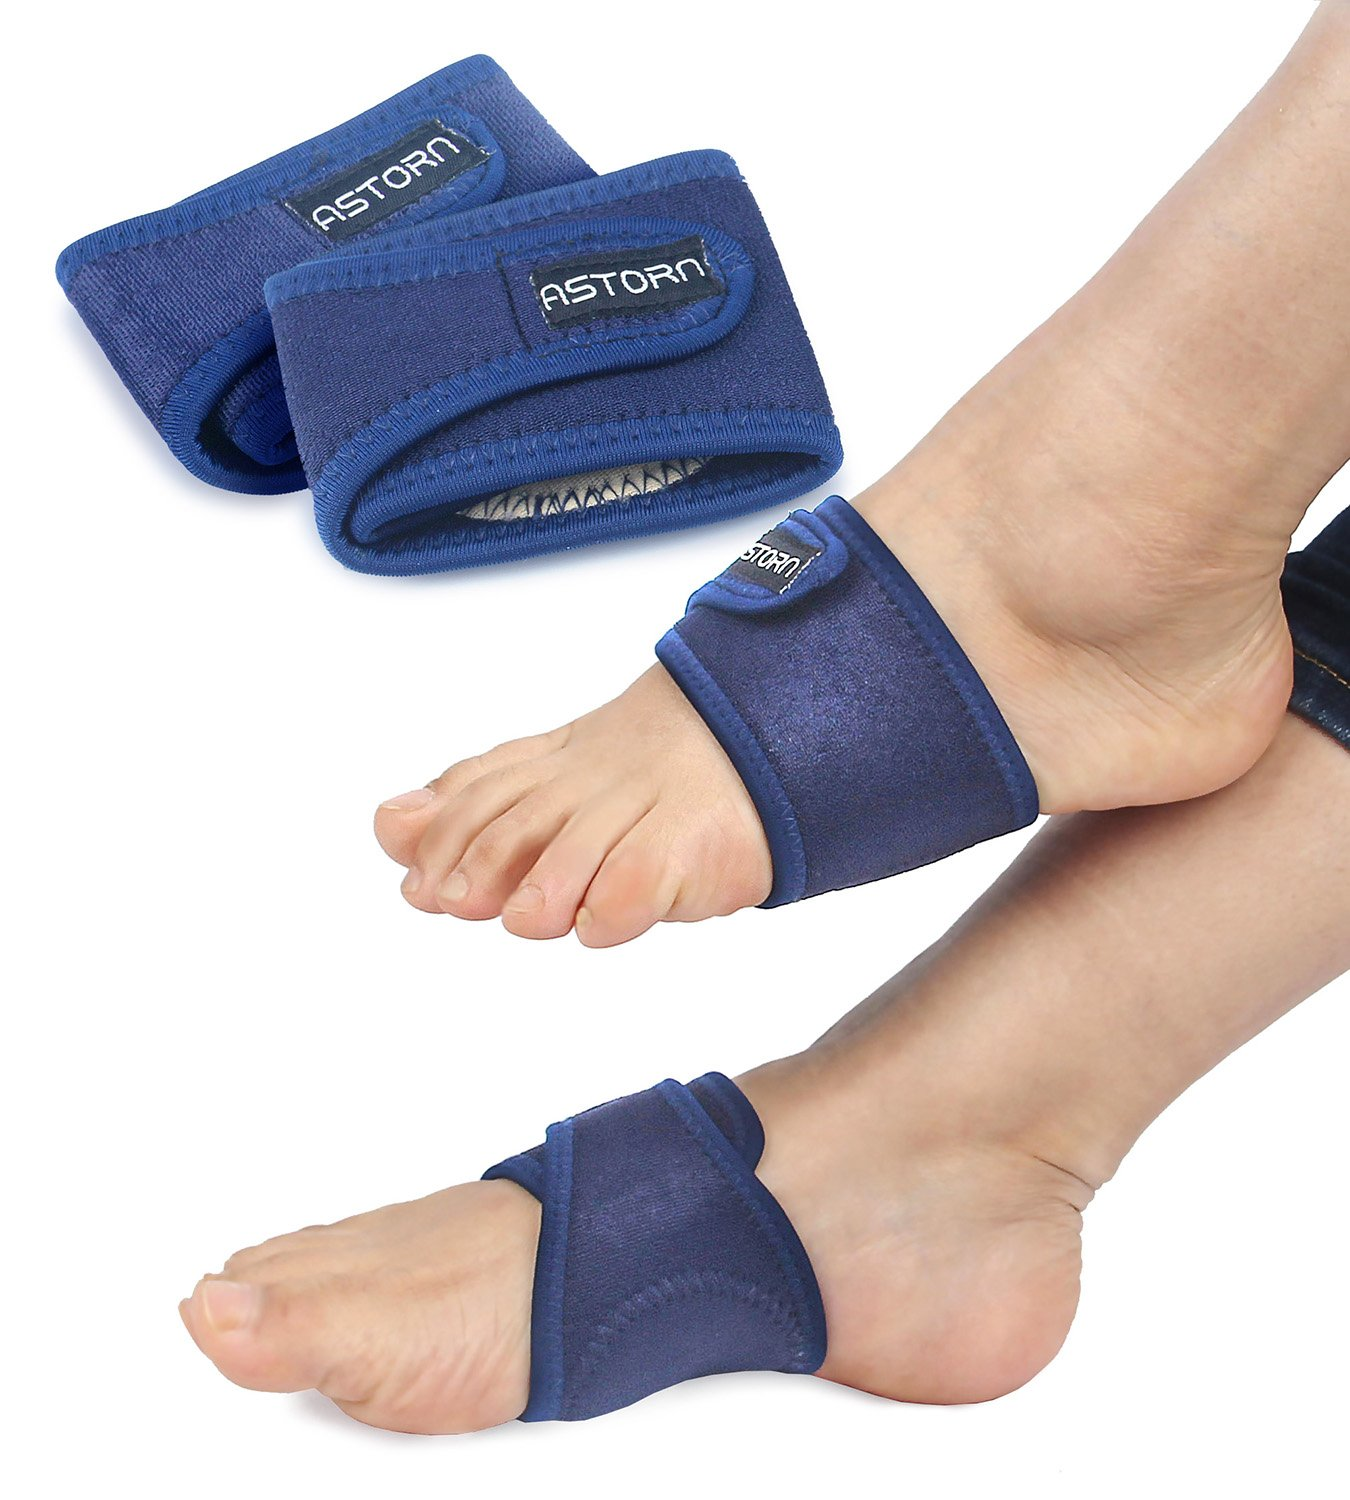 Foot Pain Relief Arch Support Brace for Women & Men Set of 2 | Compression Arch Support Sleeves with Comfort Gel Cushions | Adjustable Plantar Fasciitis, Bunion and Arch Pain Relief Brace by Astorn